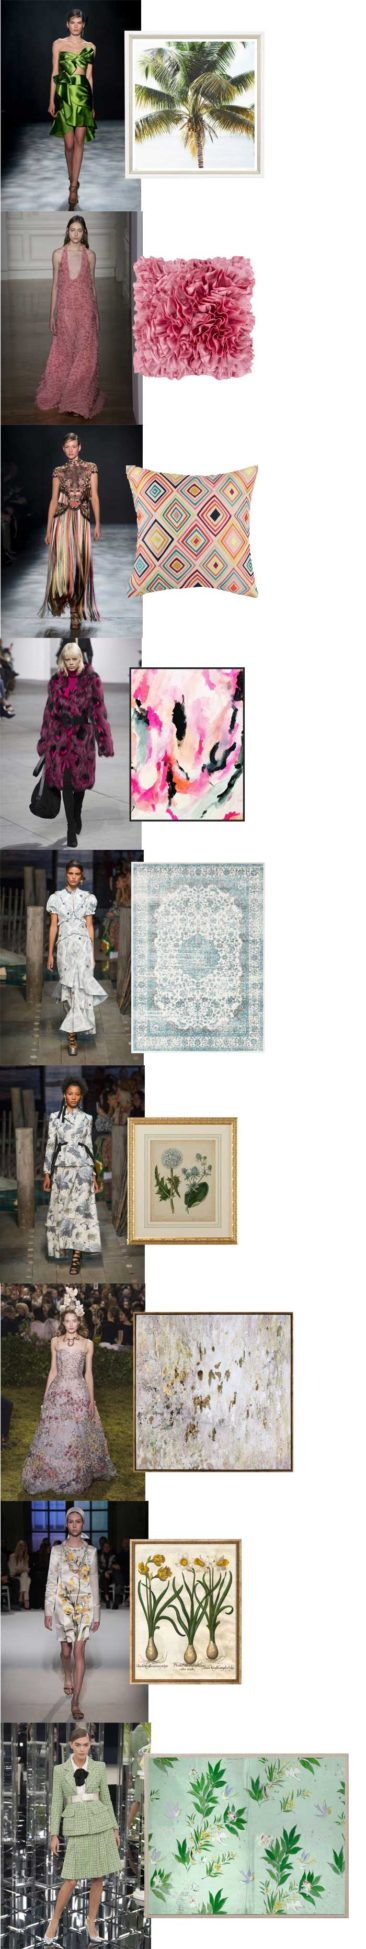 Couture & Decor – Spring 2017 Looks